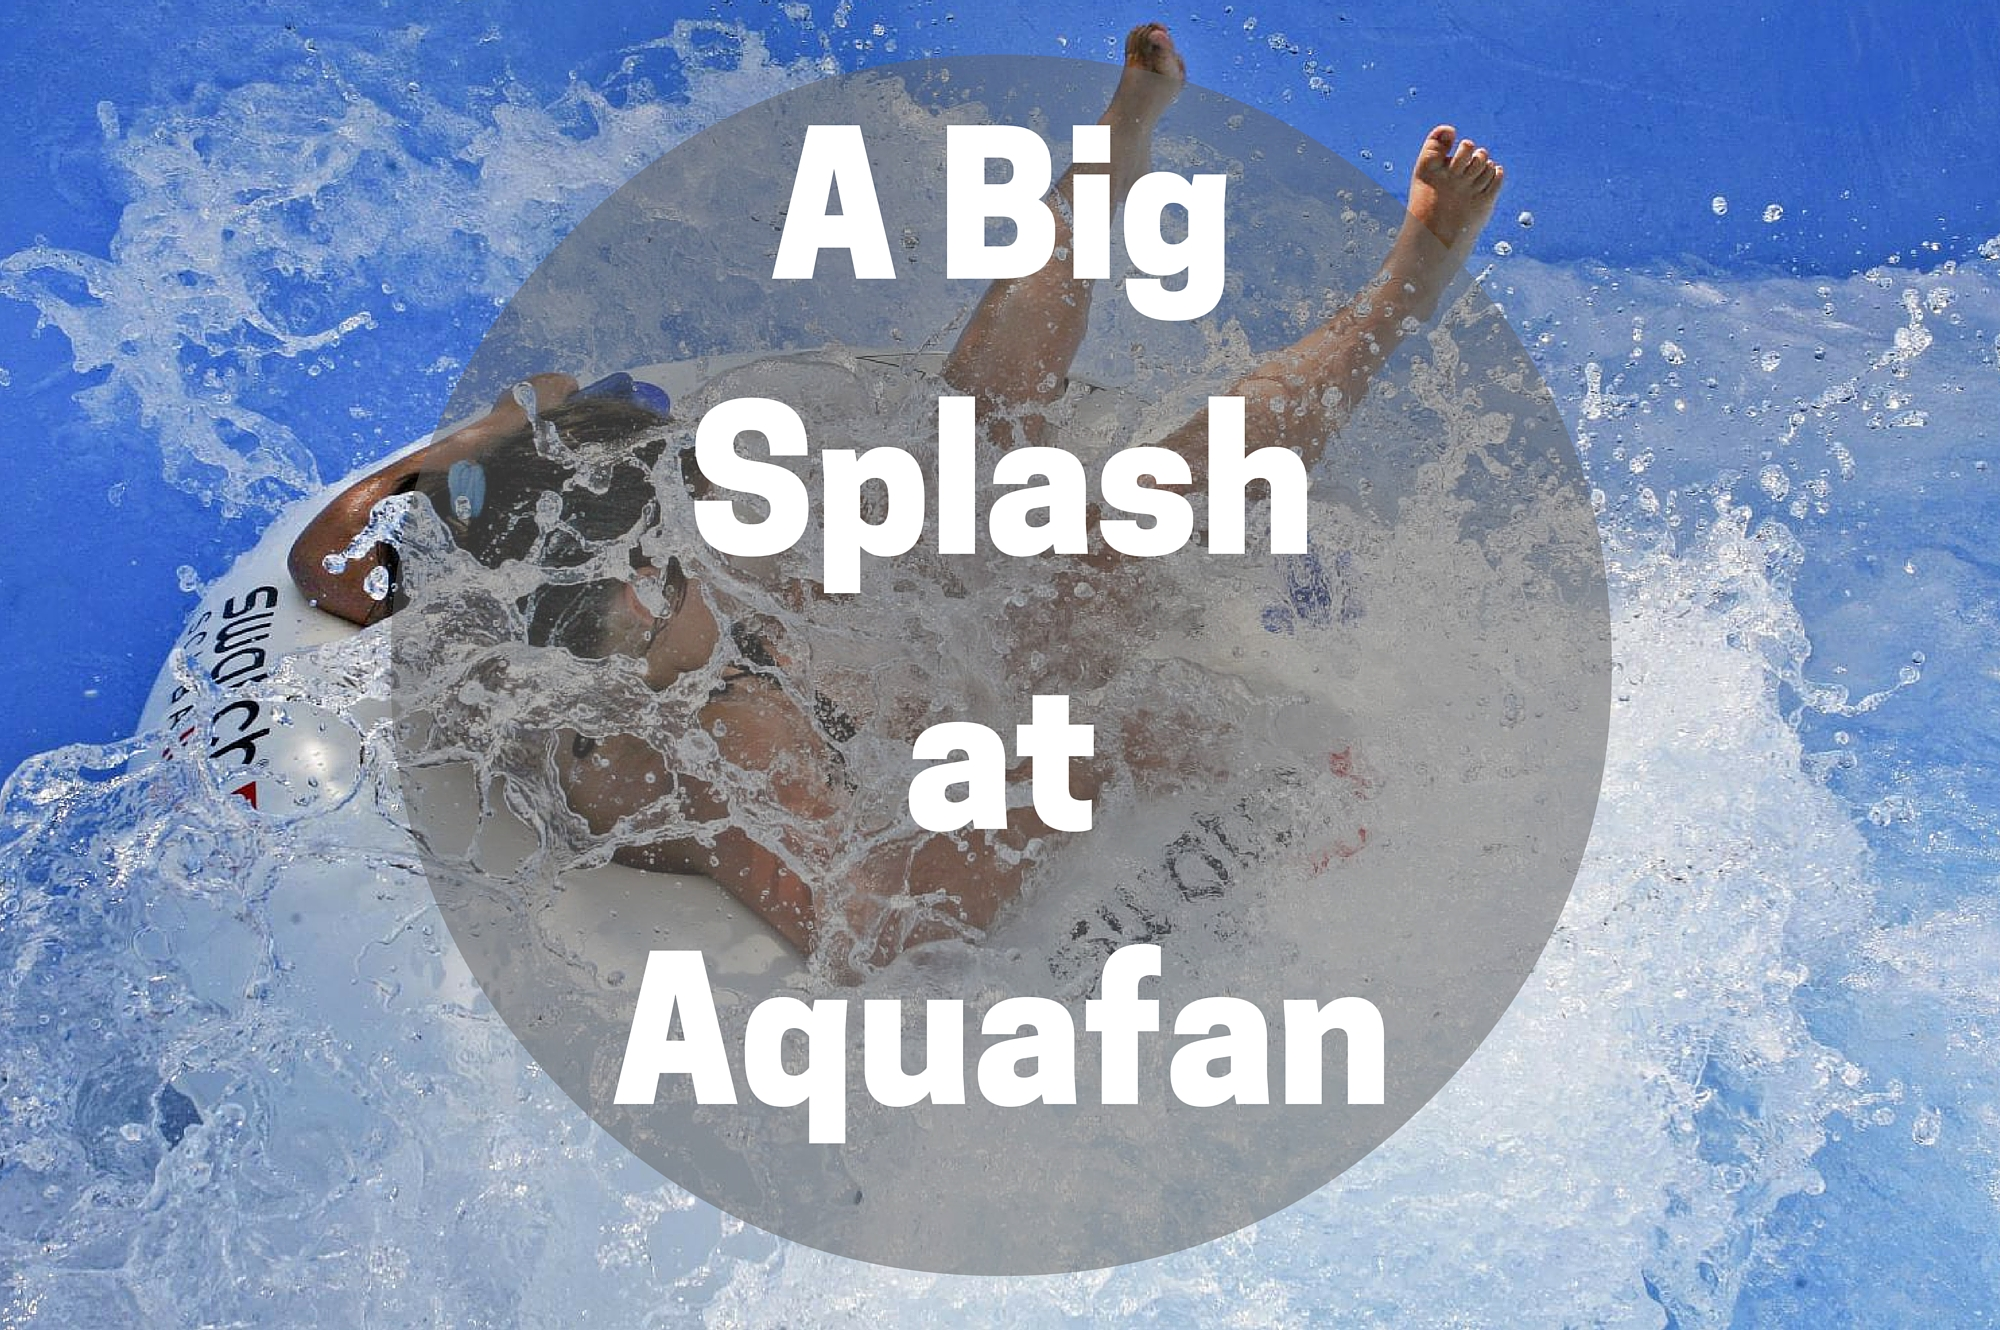 Family fun at Aquafan - Things to do for kids in Emila-Romagna Italy - A Big Splash at Aquafan